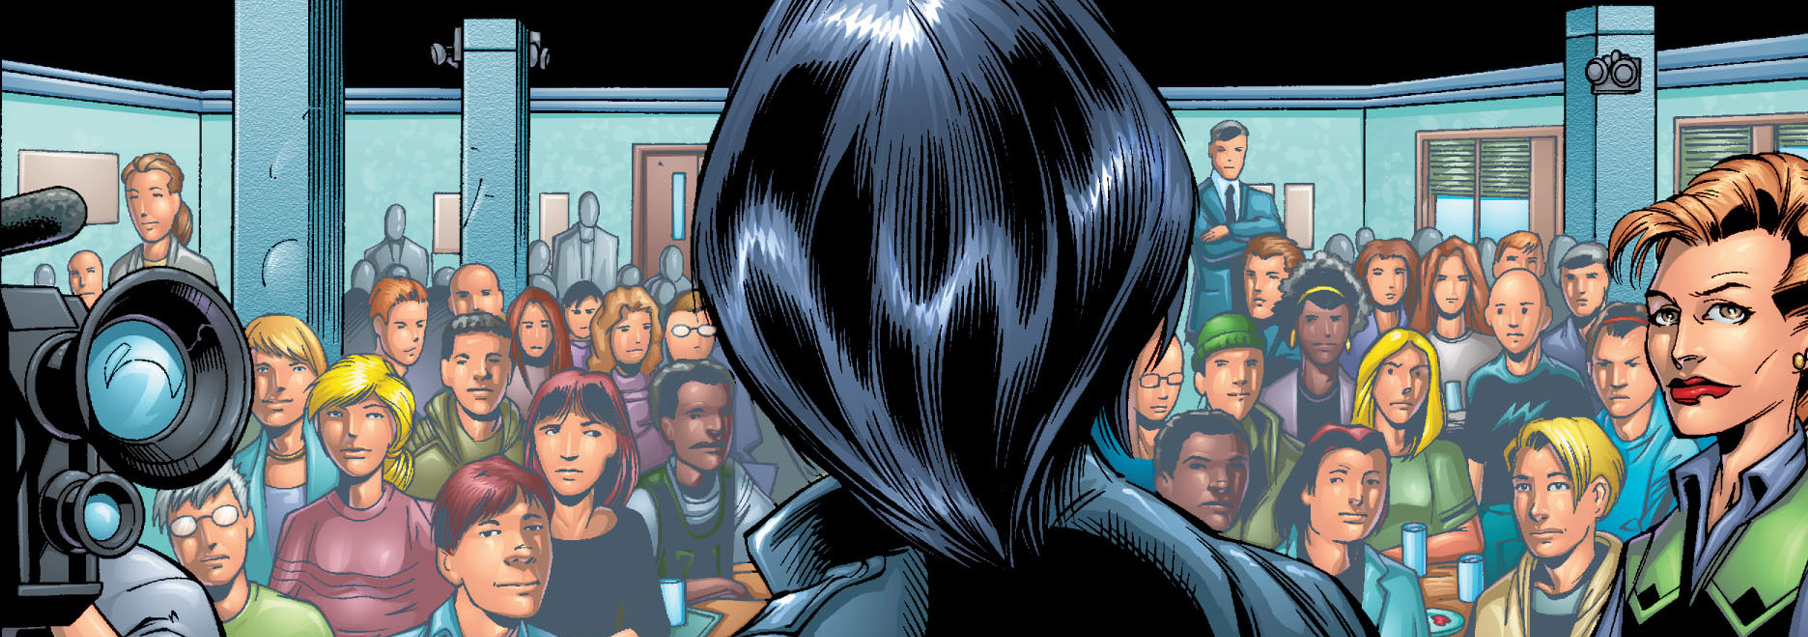 Kraven In Midtown High School Ultimate Spider Man Vol 1 19 2002.png